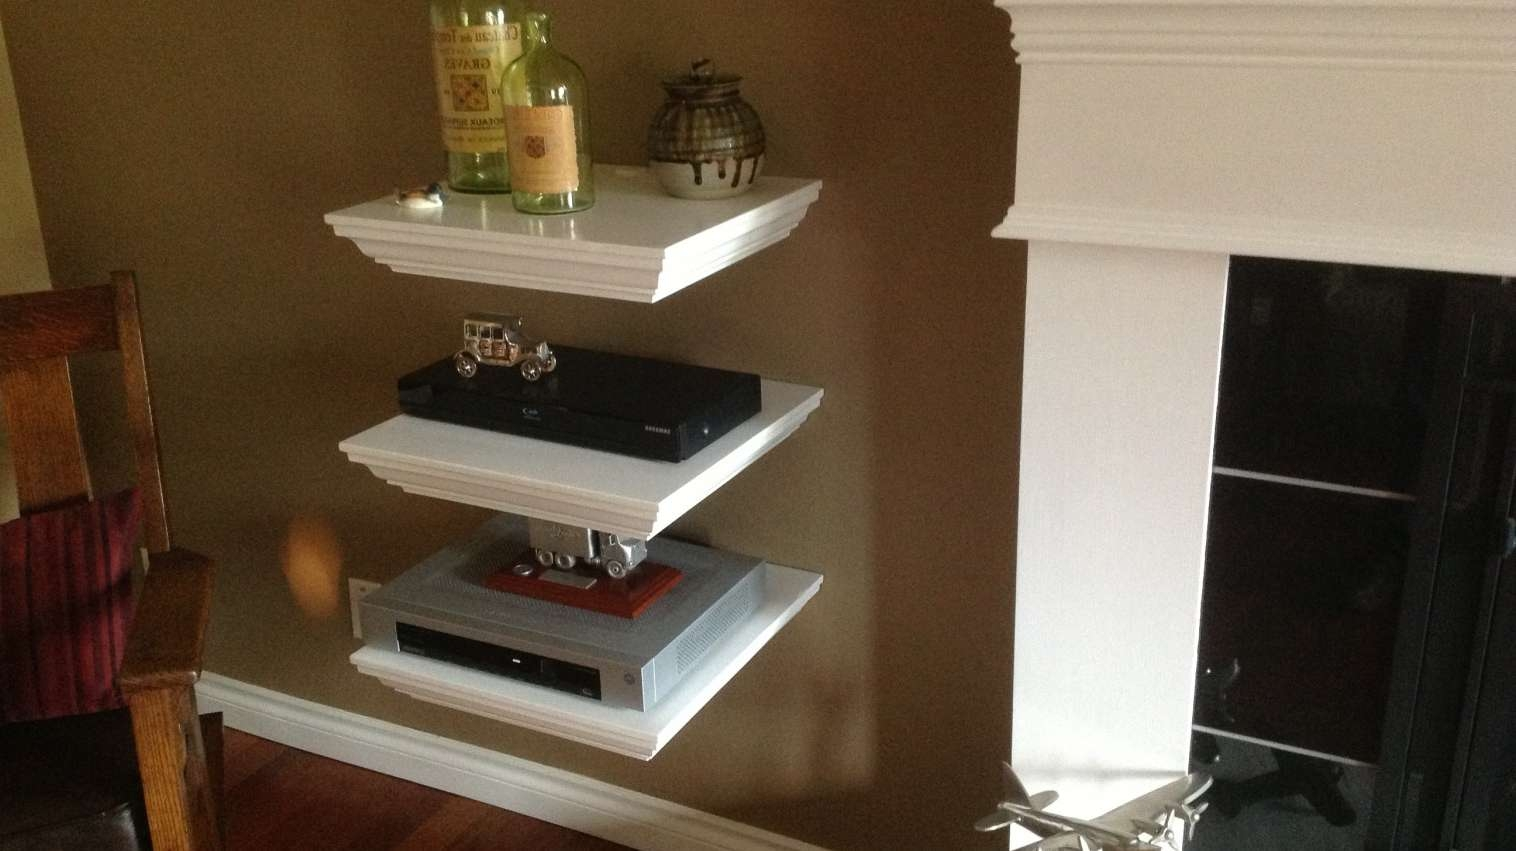 Startling Cream High Gloss Tv Stands Tags : Cream Gloss Tv Stands Regarding Cream Gloss Tv Stands (View 10 of 15)